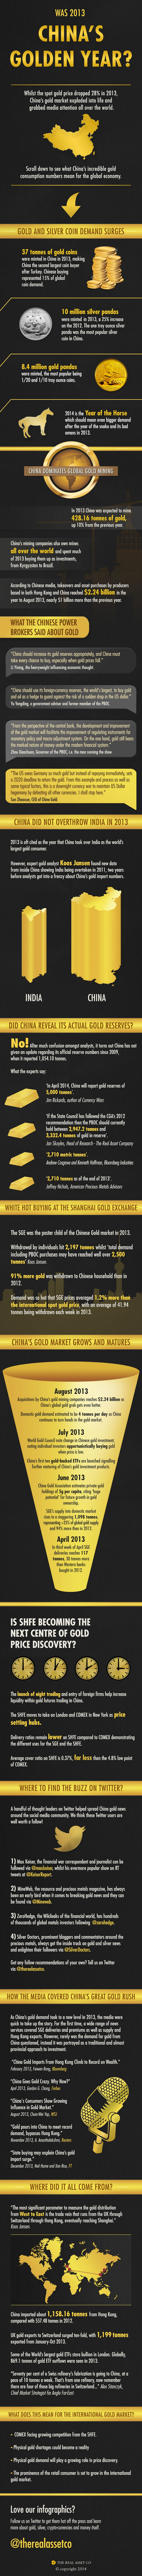 china gold infographic